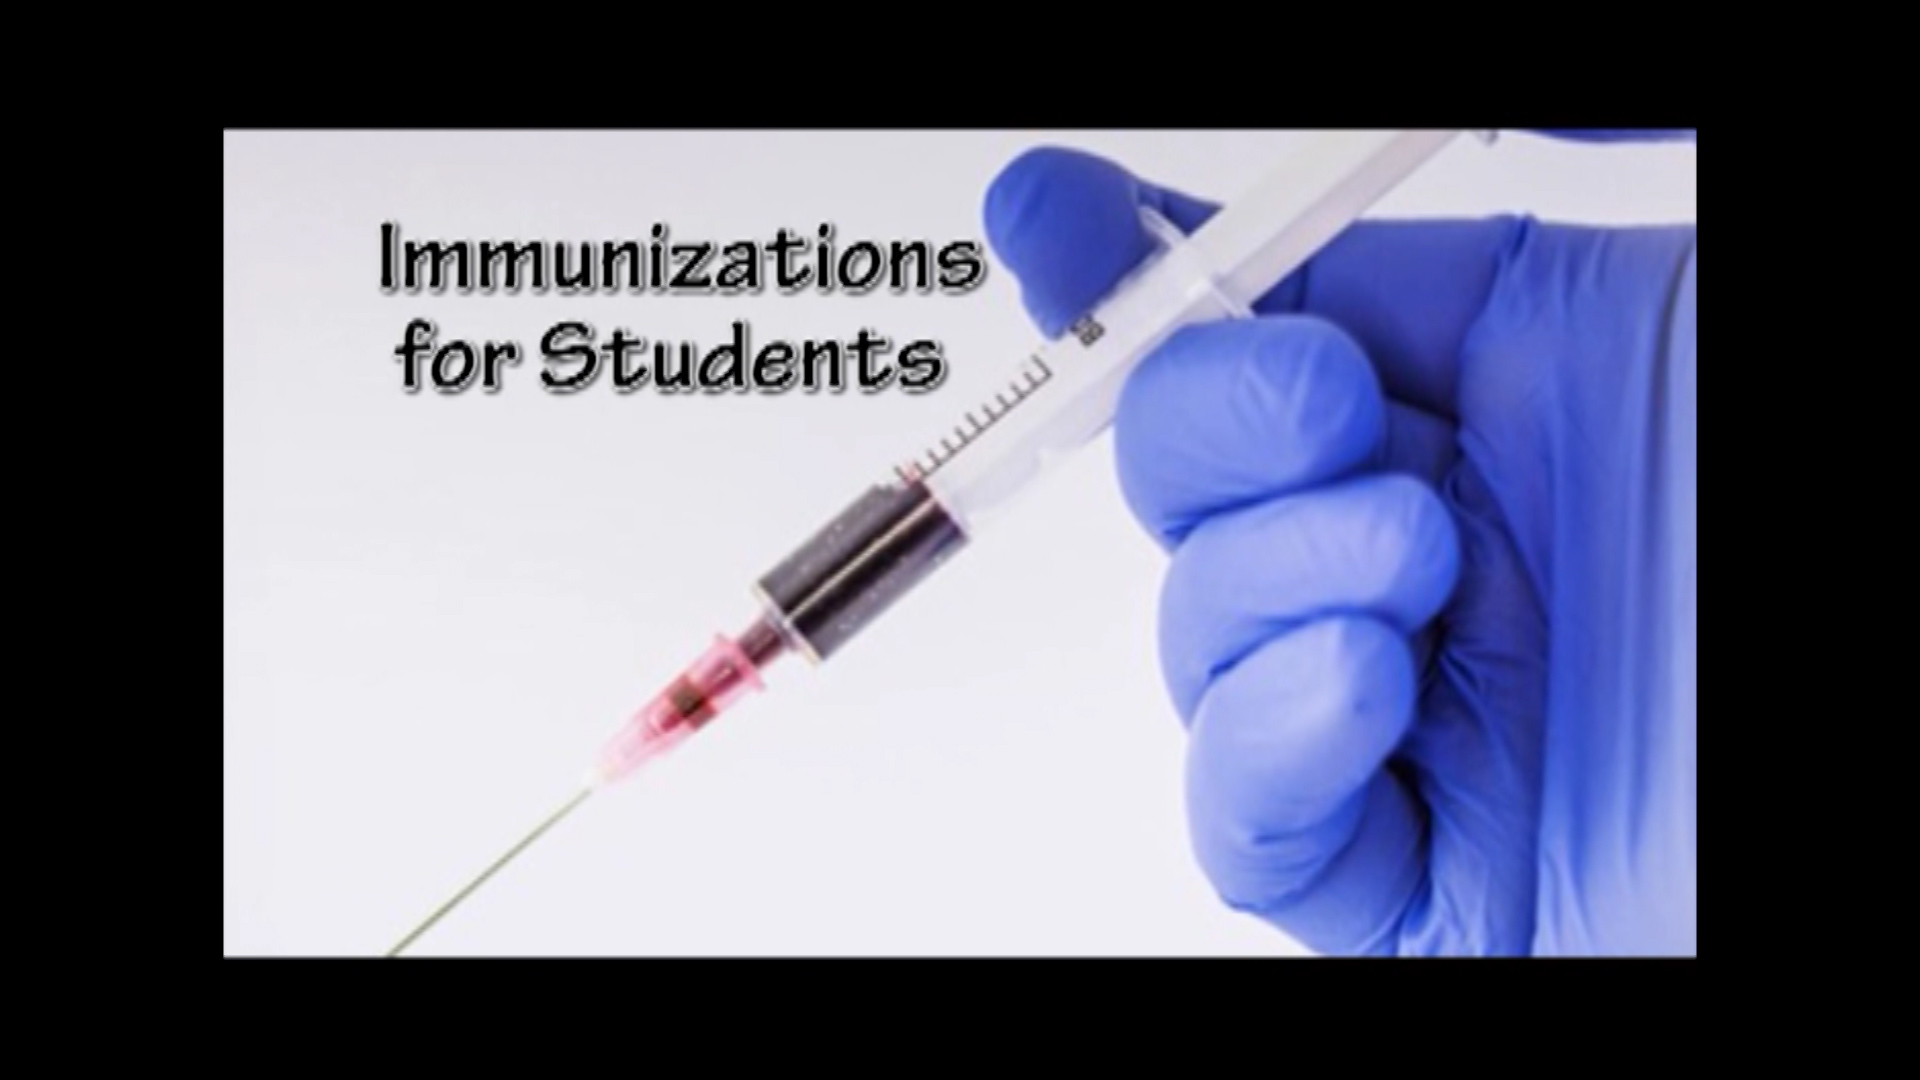 Immunizations for Students January 2, 2018